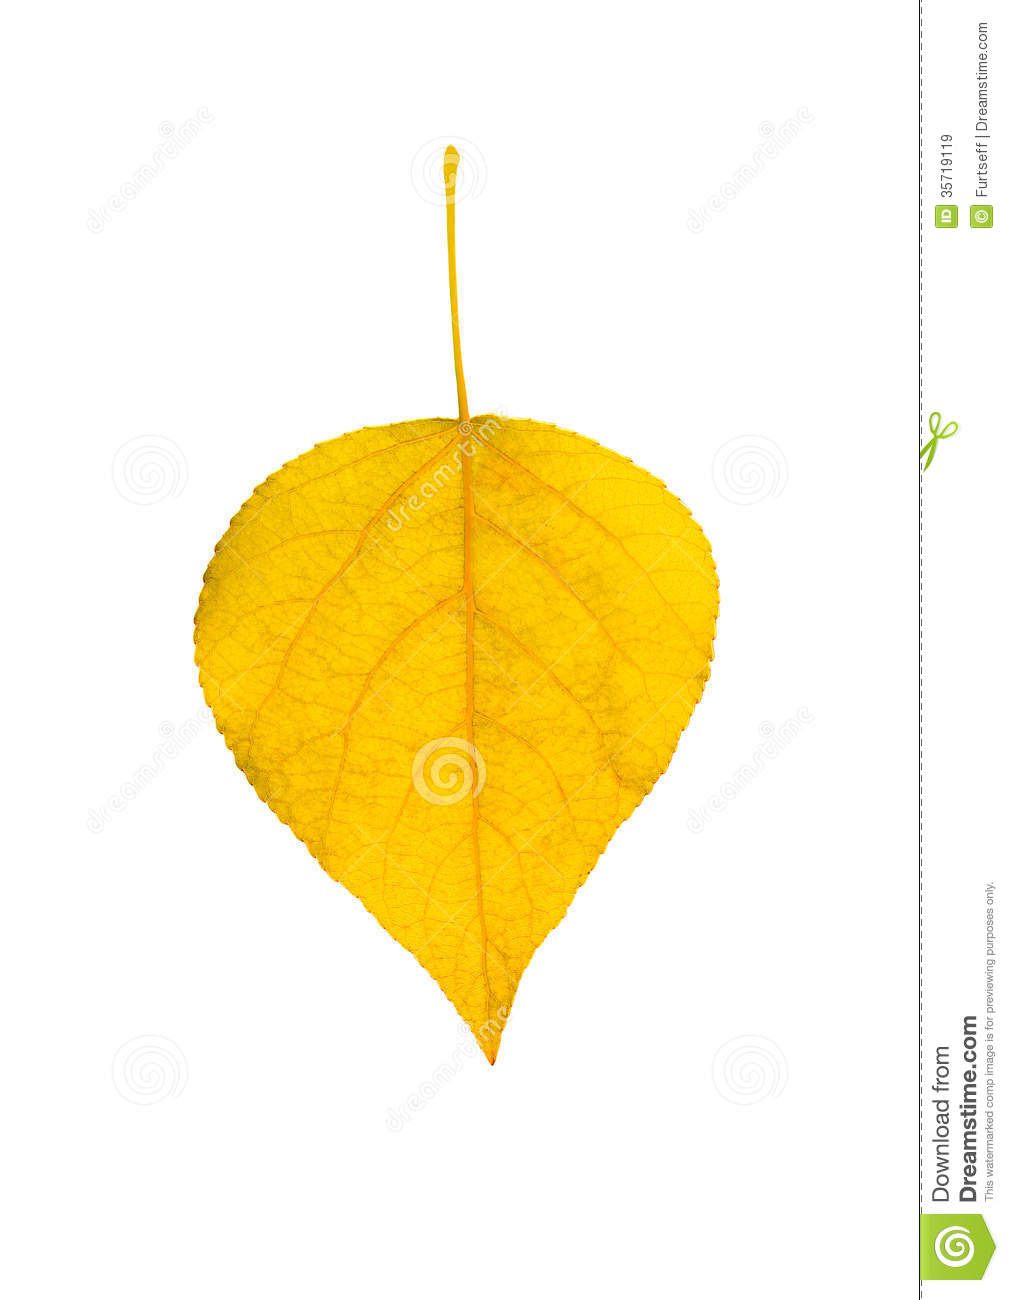 Yellow Leaf Royalty Free Stock Images - Image: 35719119